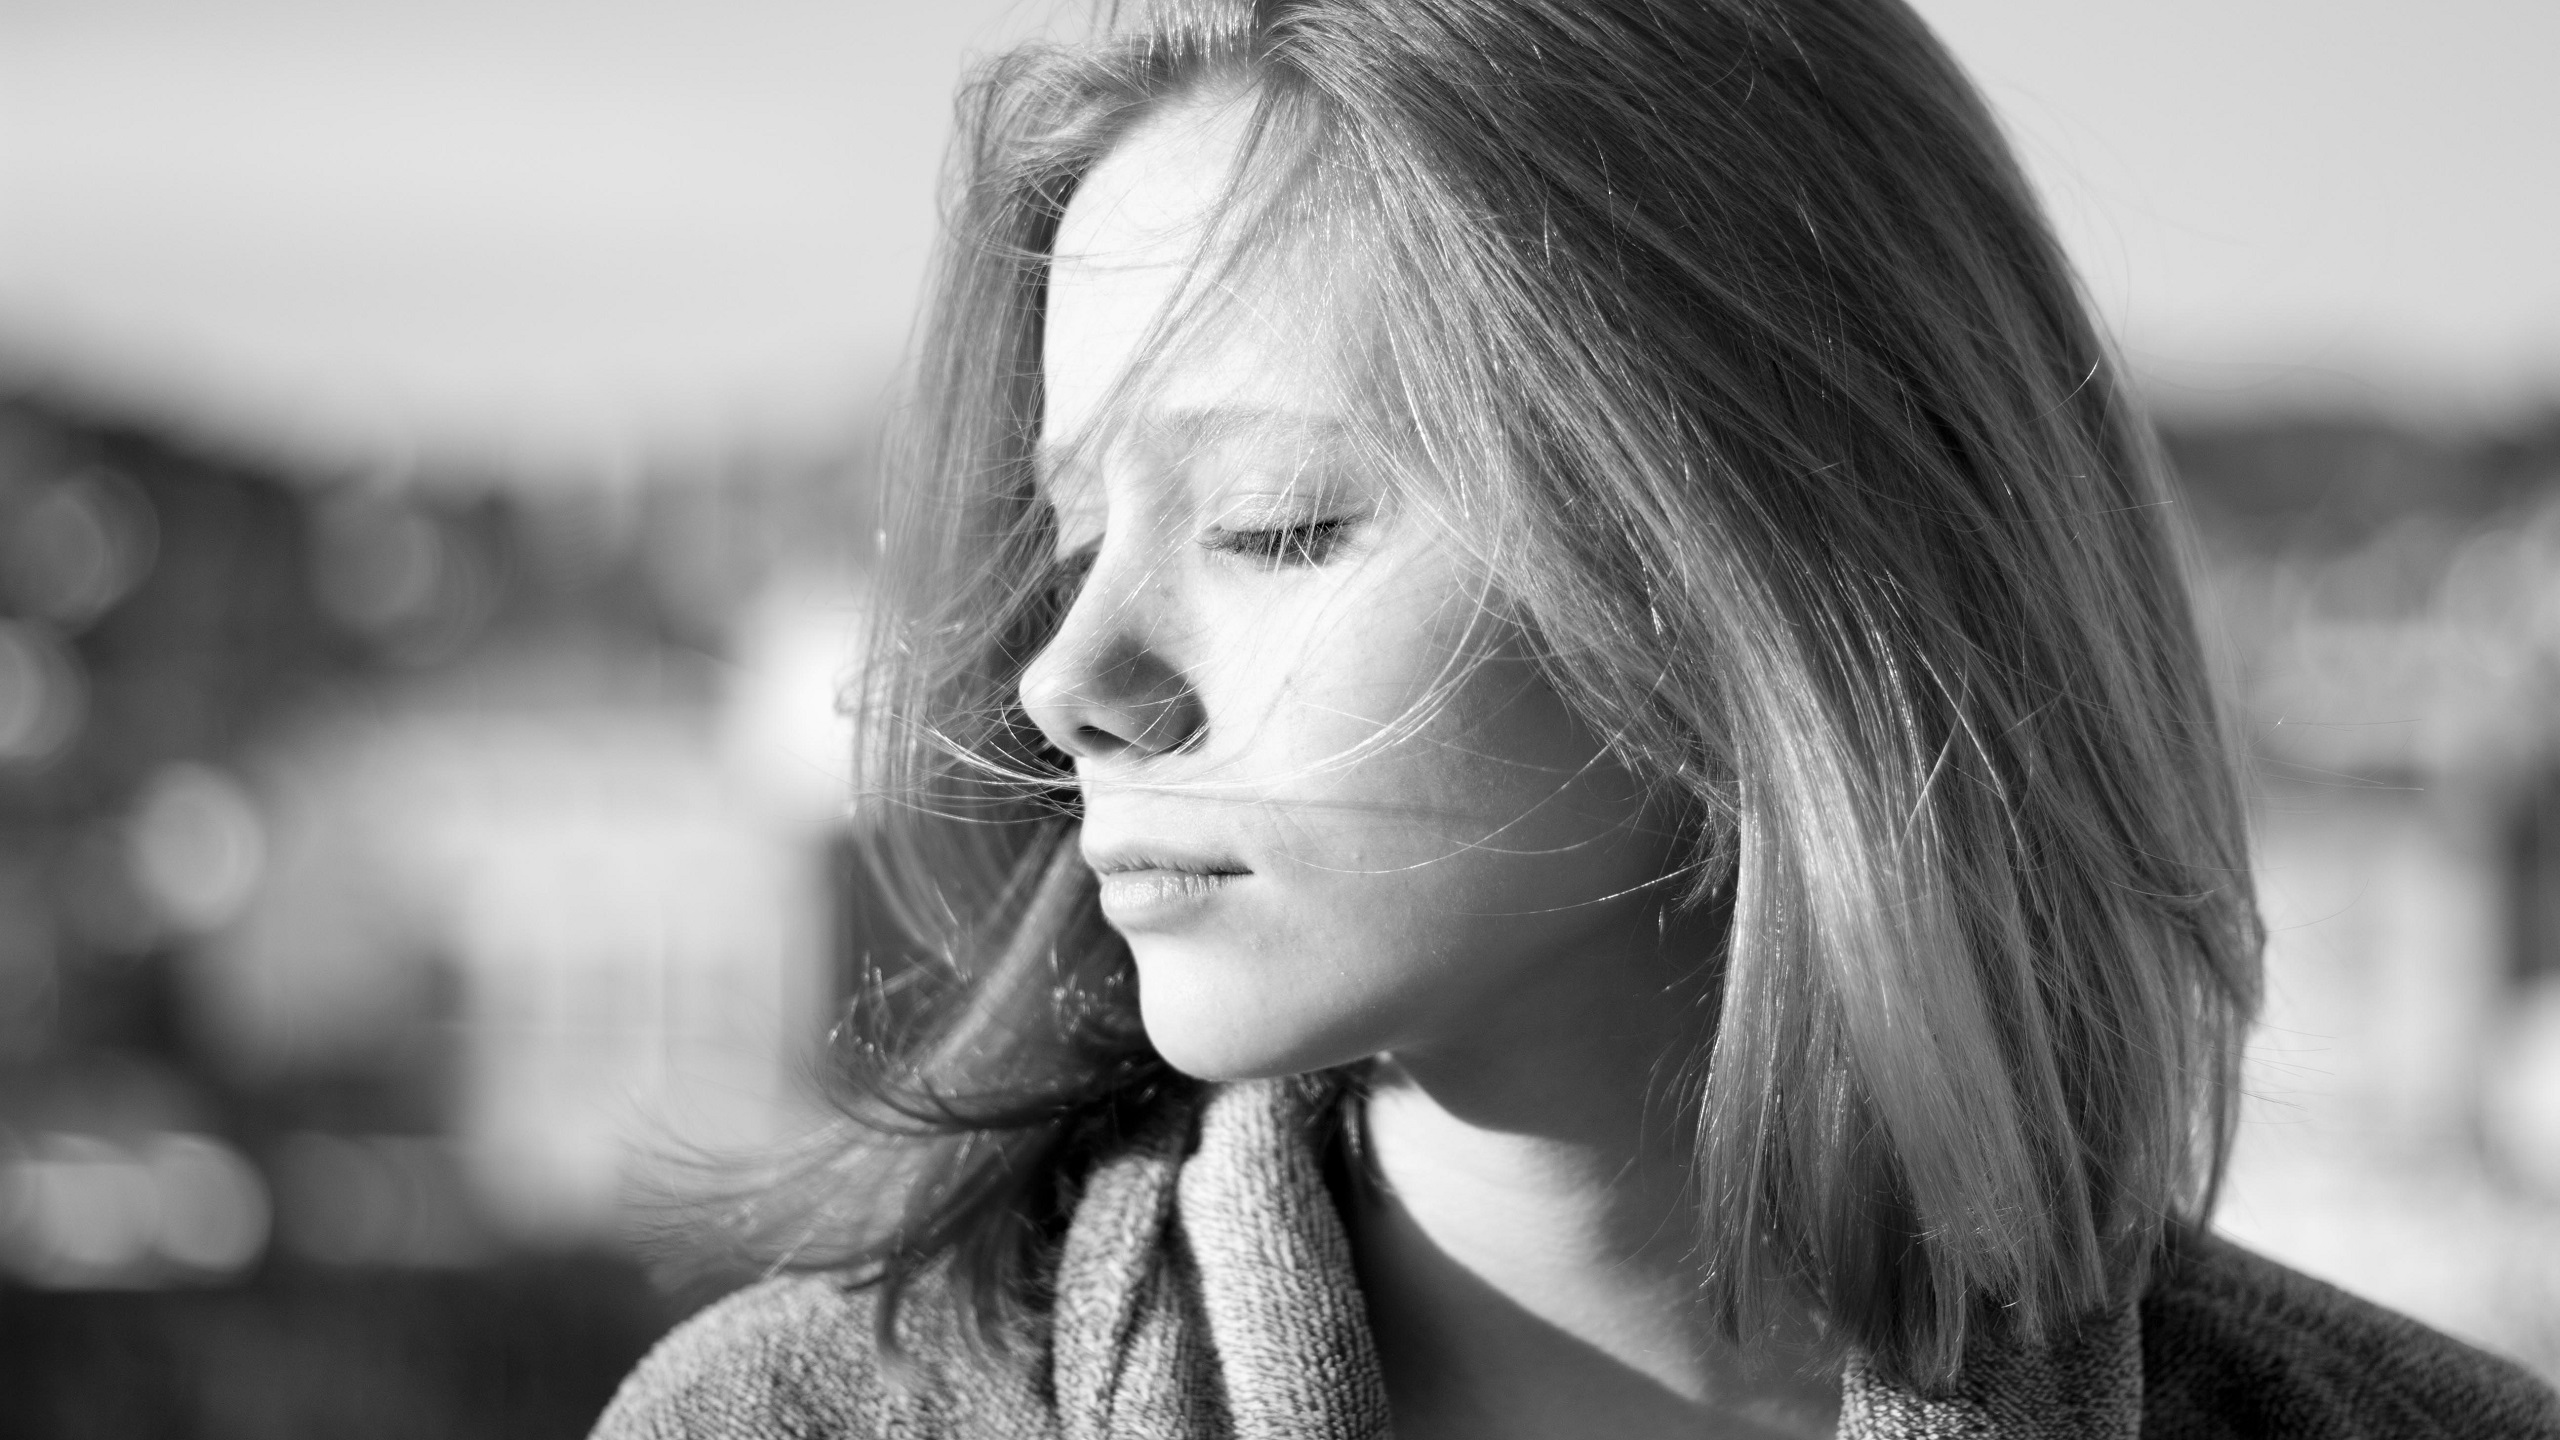 People 2560x1440 women actress celebrity blonde coats closed eyes Laia Manzanares monochrome